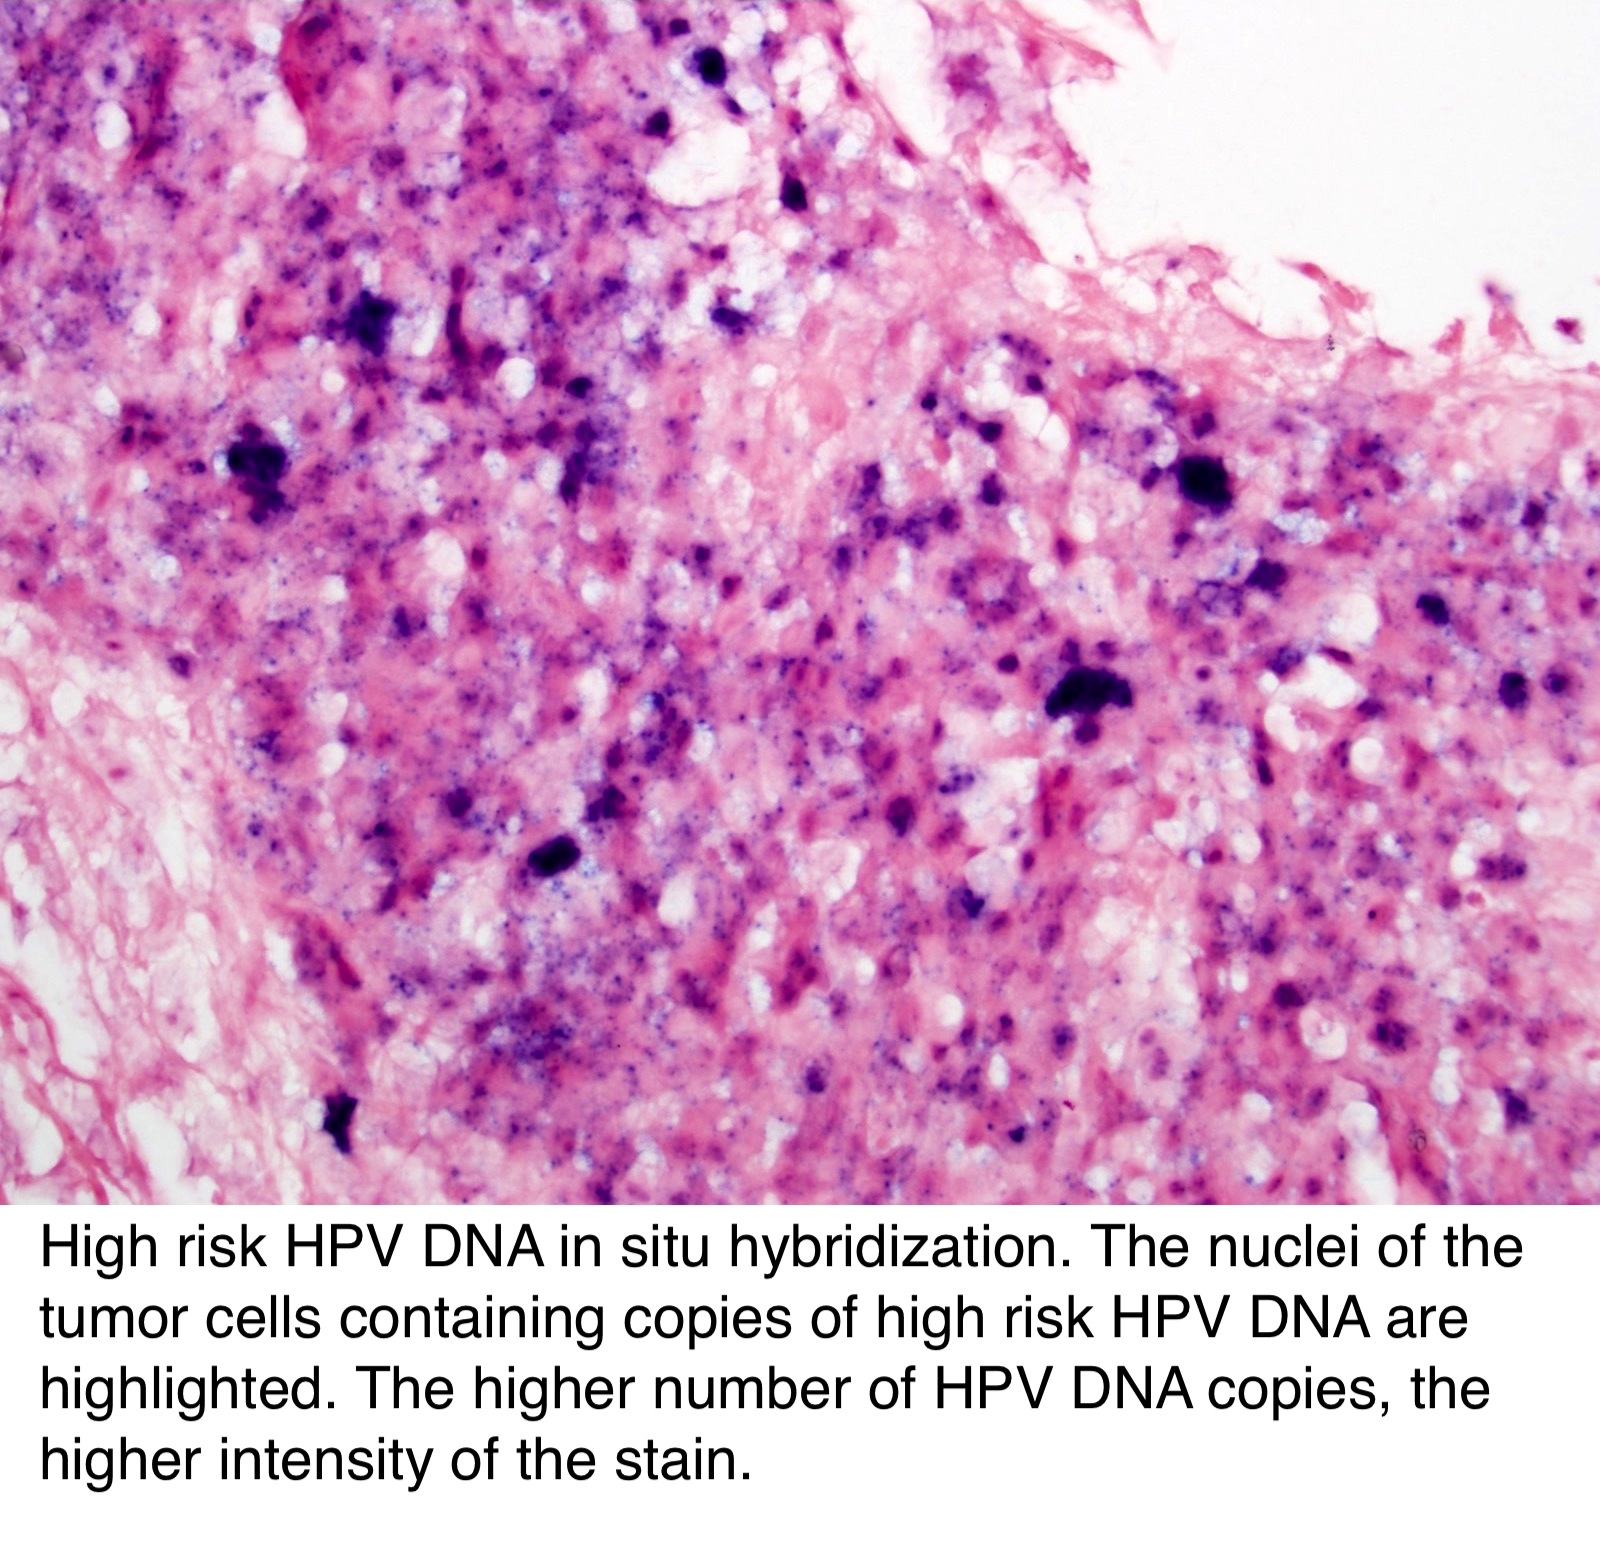 hpv esophagus pathology outlines